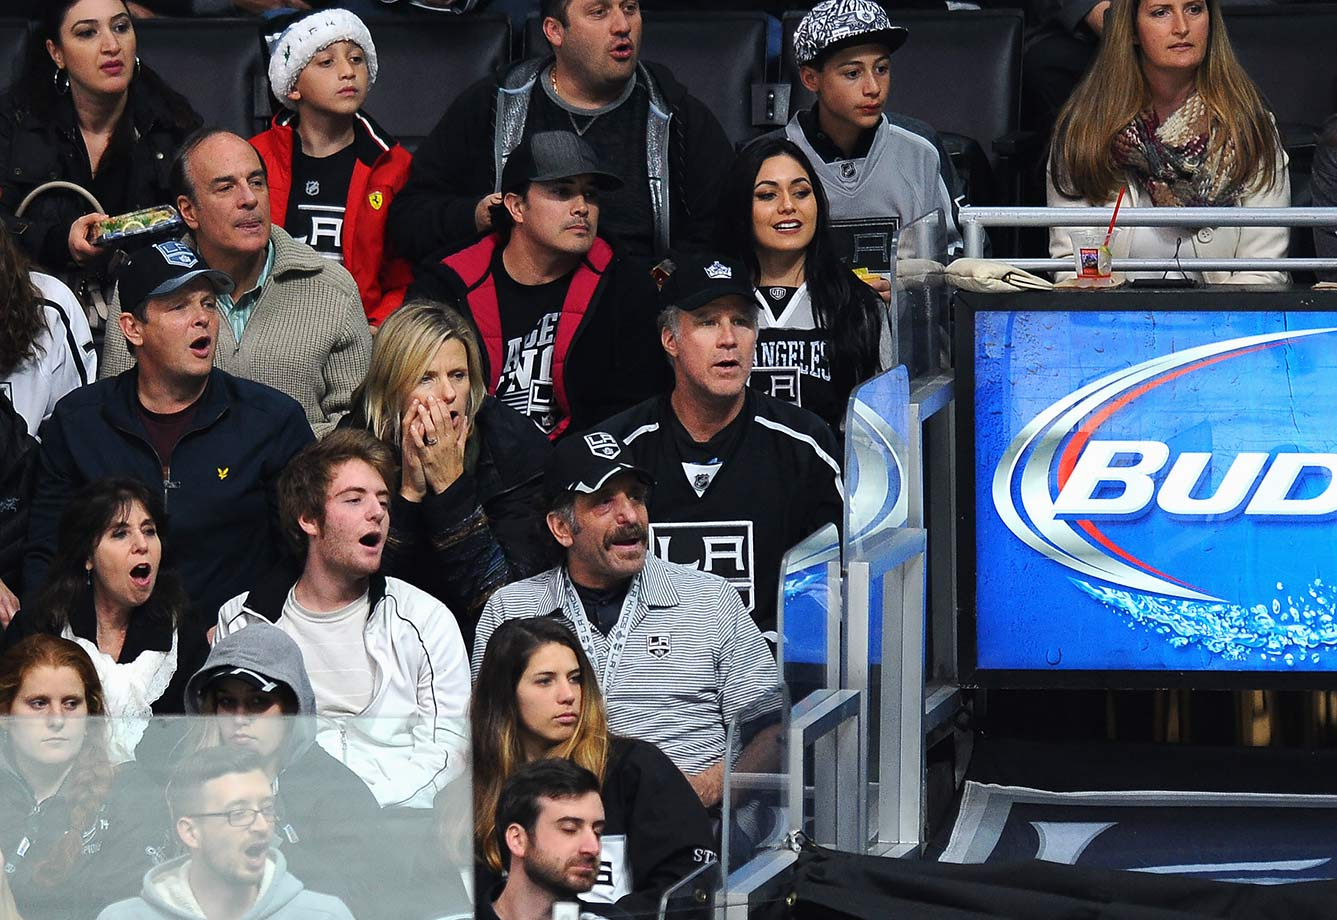 Los Angeles Kings vs. San Jose Sharks on December 22, 2015 at Staples Center in Los Angeles.